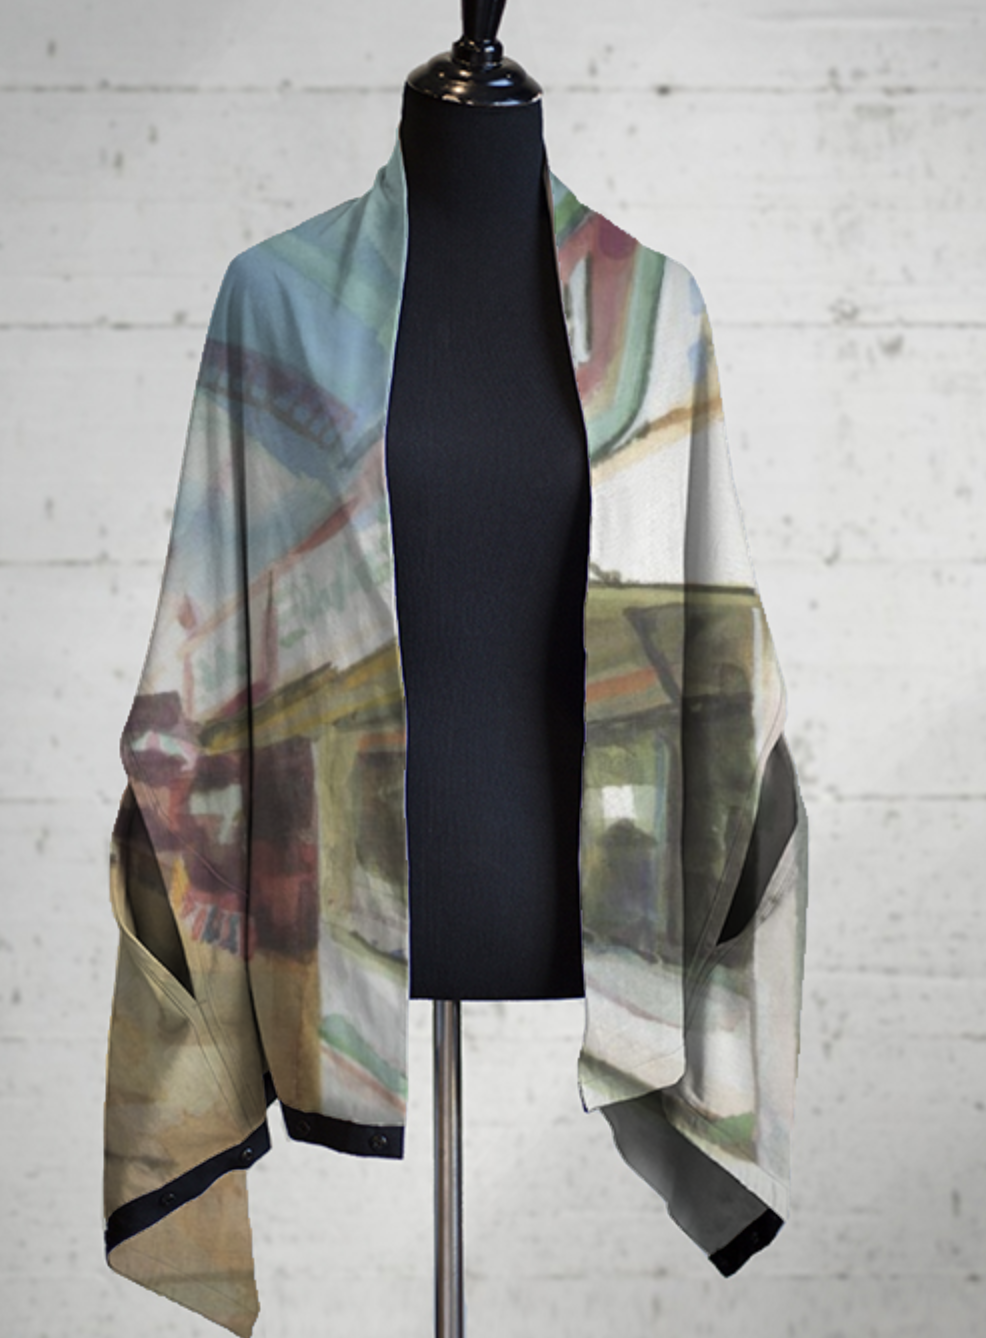 shawl-WilliamHeydt-VidaCollection2018-8.png